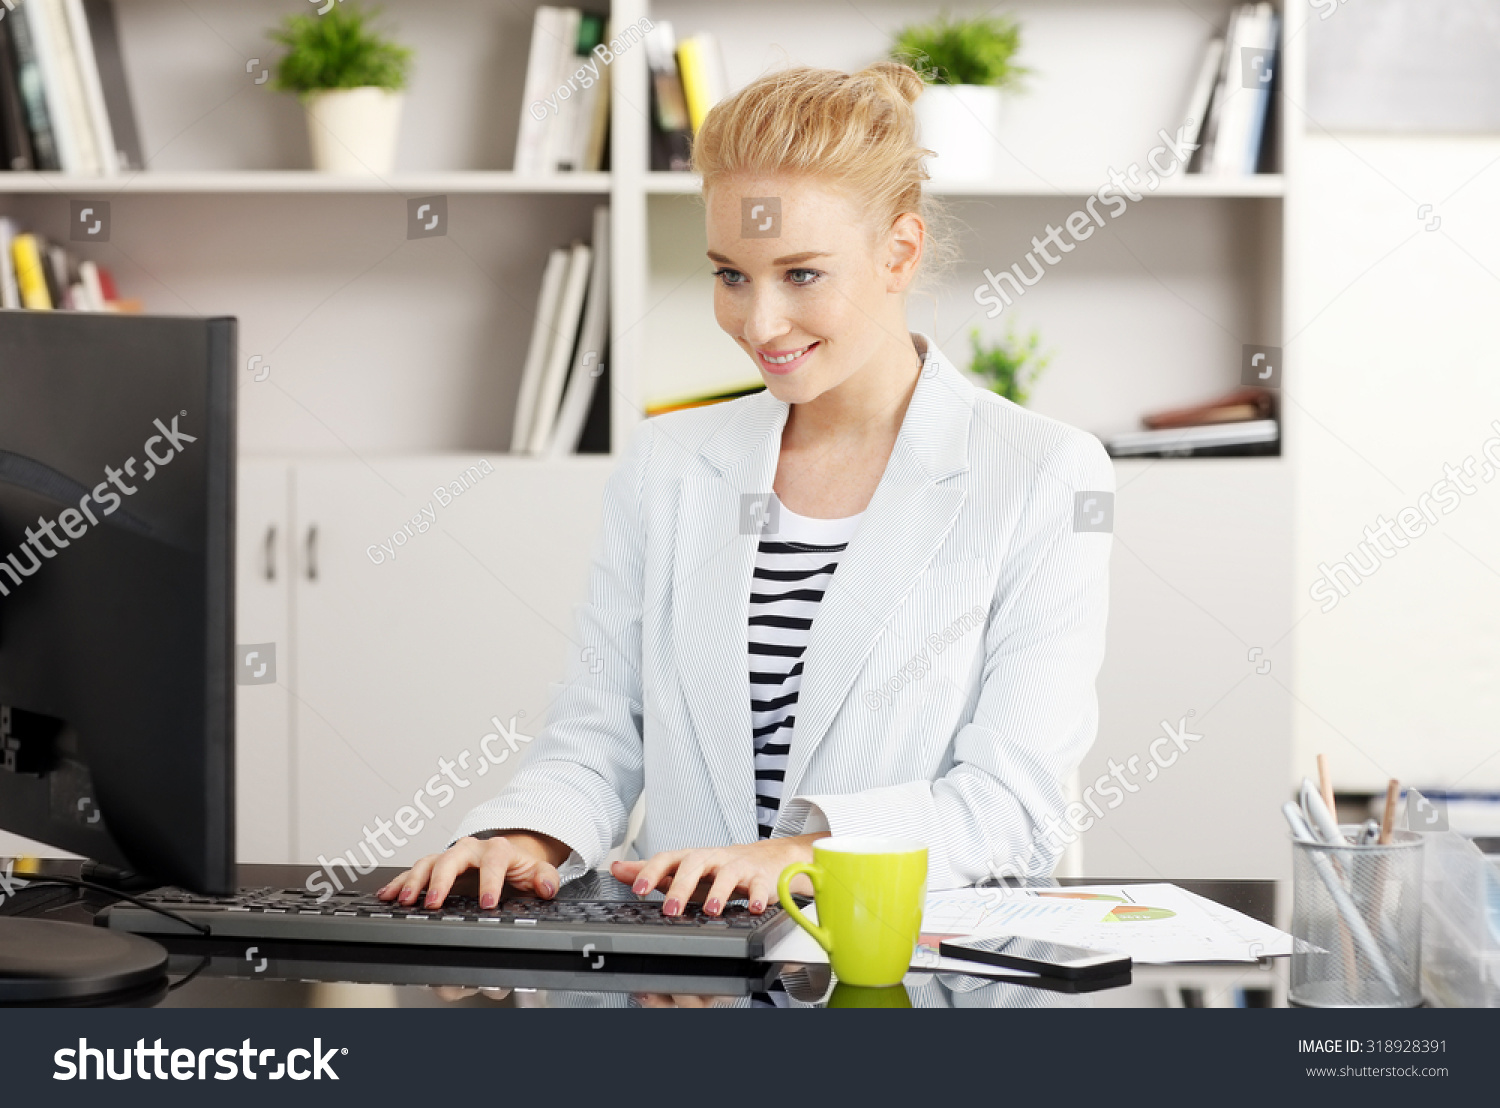 Portrait young assistant typing on keyboard stock photo 318928391 shutterstock - Post office working today ...